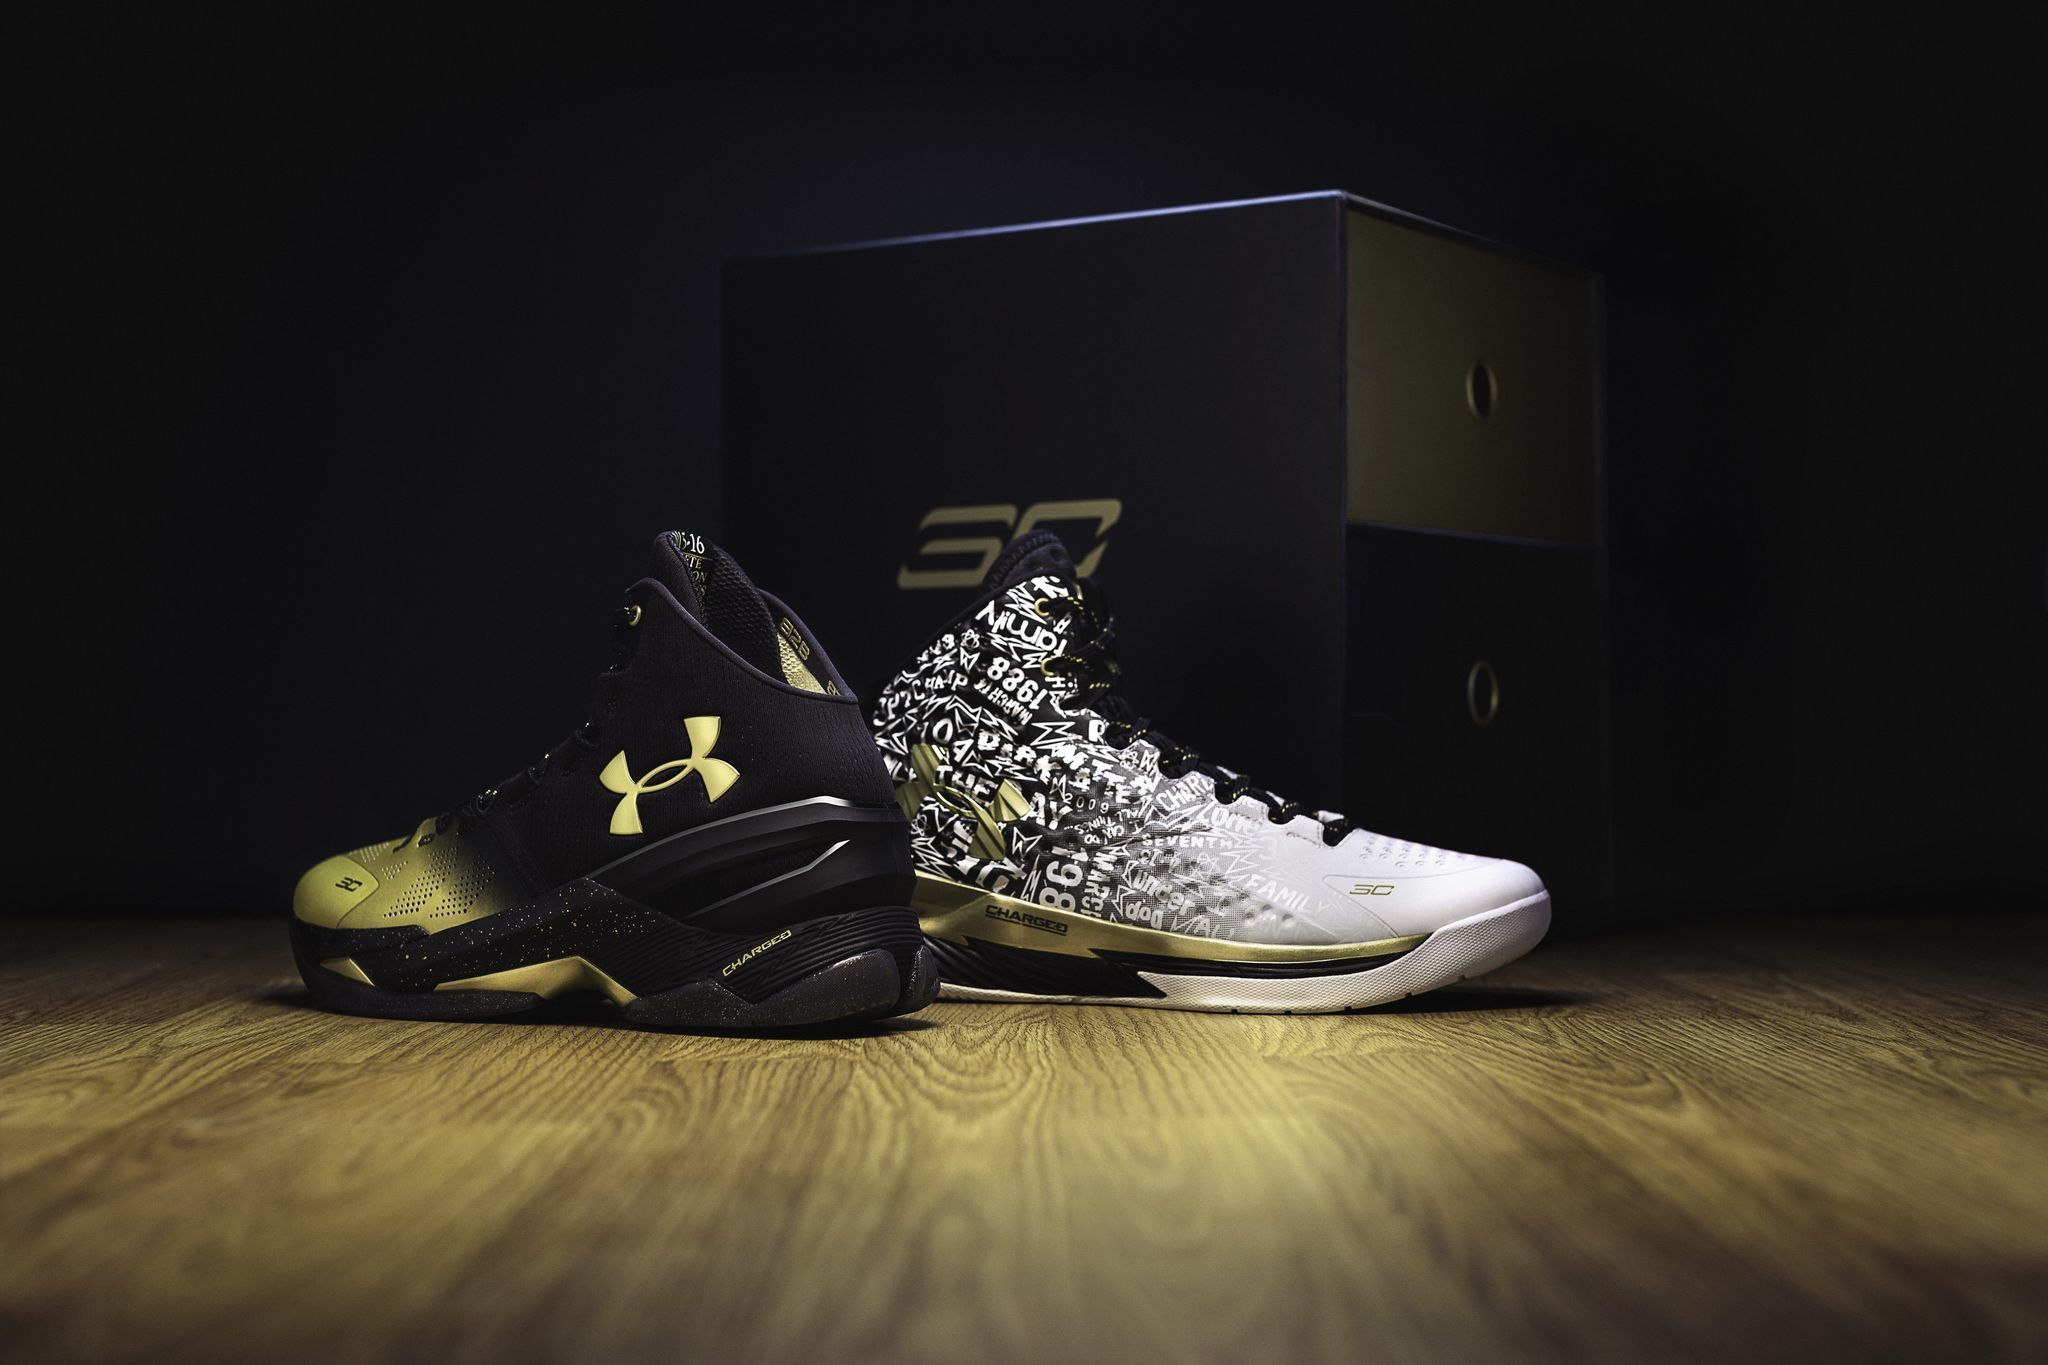 7557b758ab8d Under Armour sells out limited edition Curry shoes online after MVP  announcement - Baltimore Sun